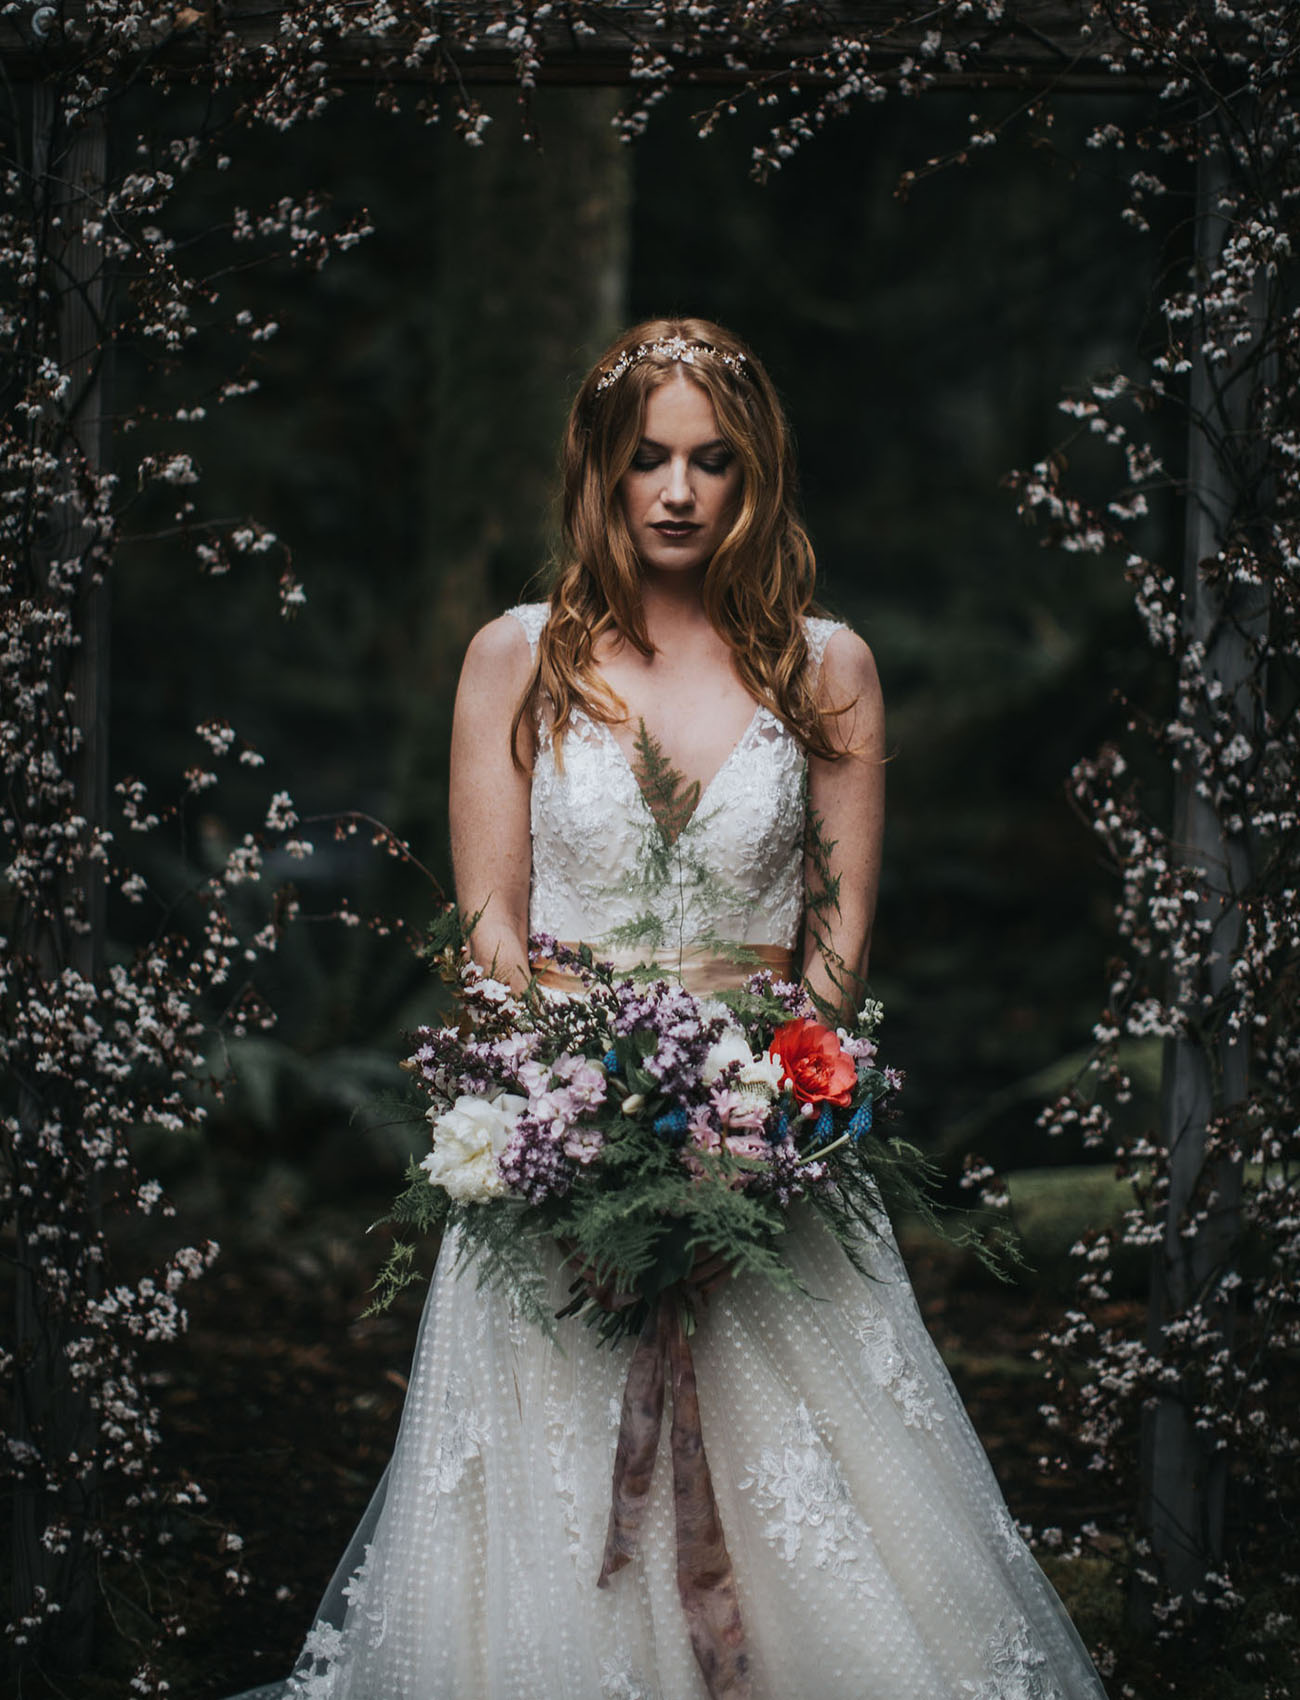 The bride was wearing a V neckline lace bodice wedding dress with a layered tulle and lace applique skirt by Maggie Sottero